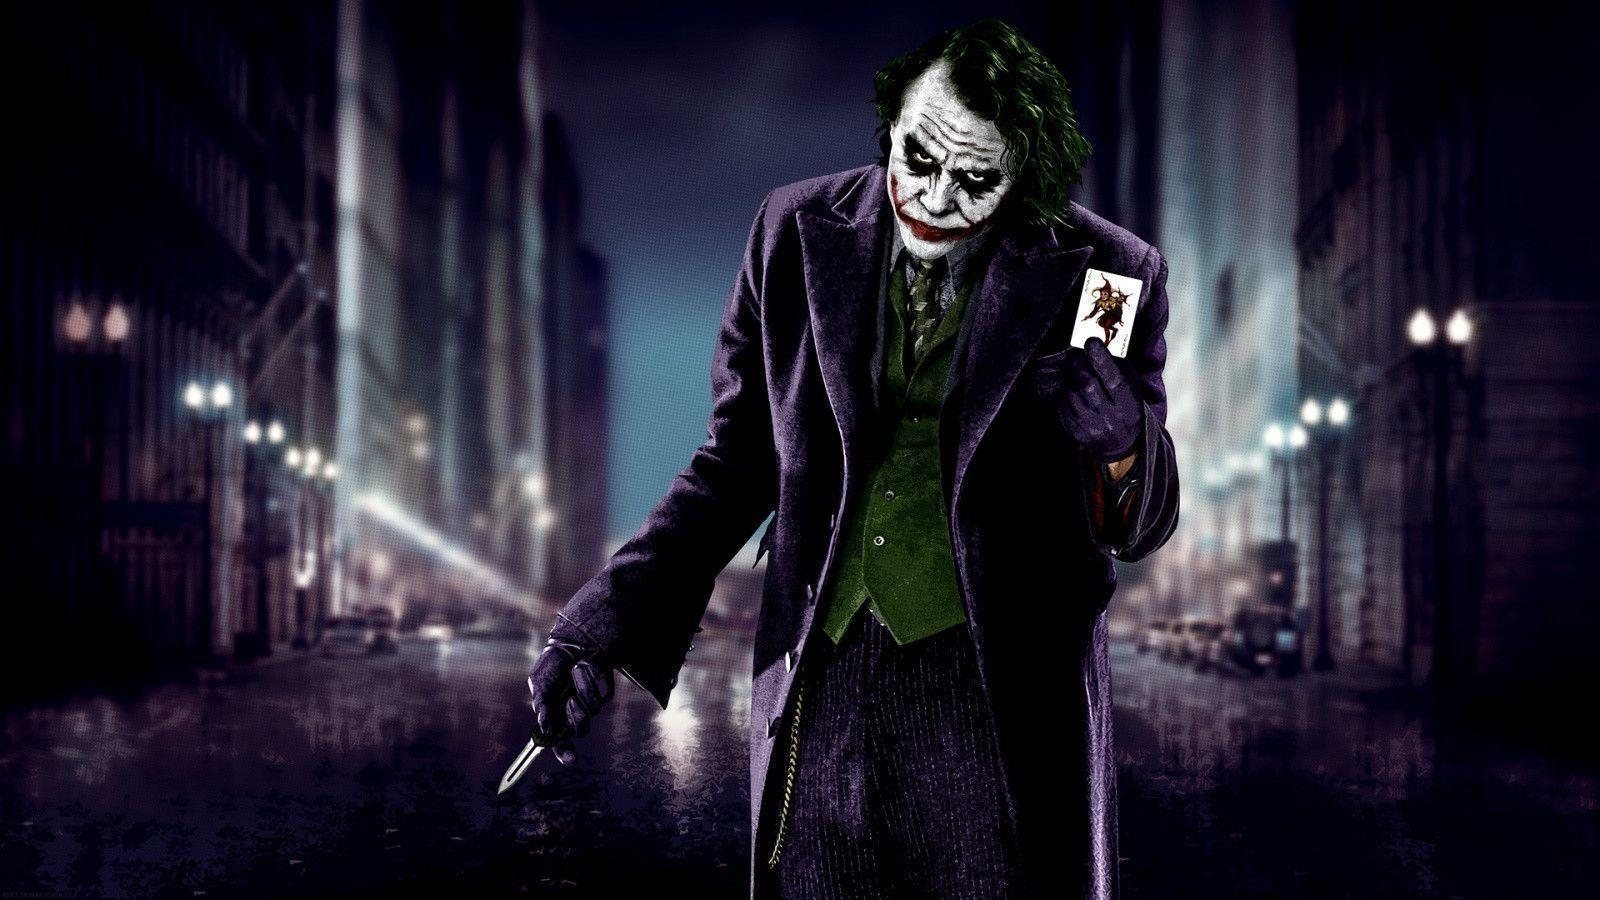 the dark knight joker wallpapers - wallpaper cave